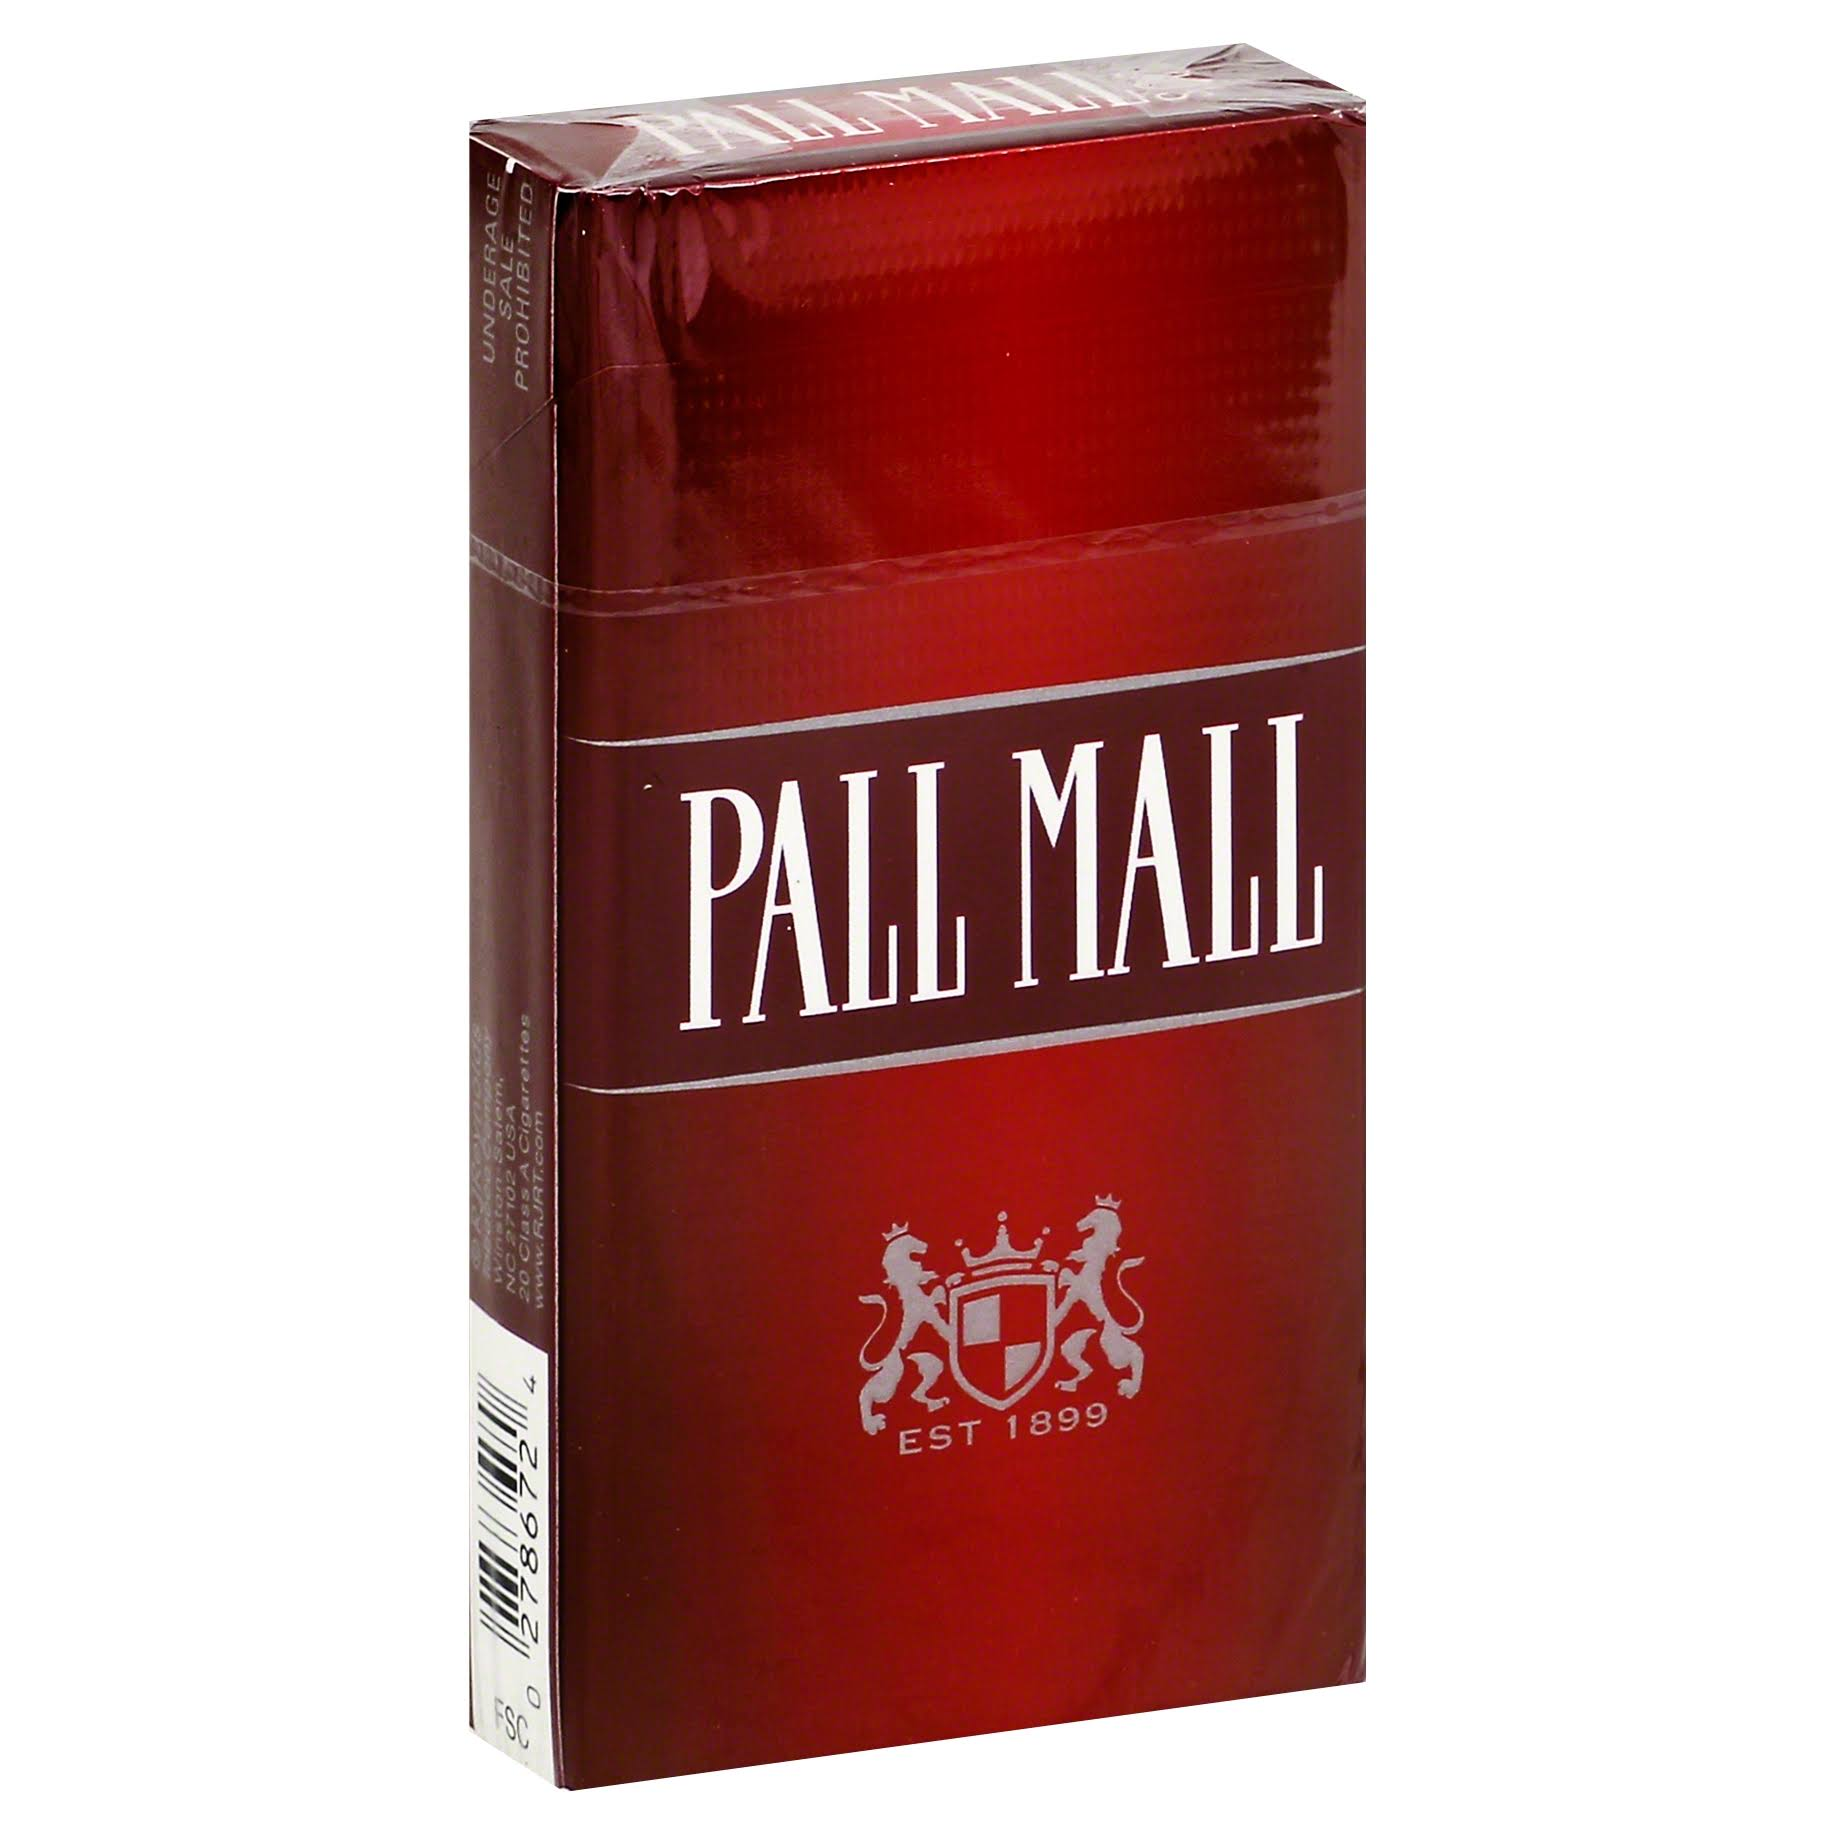 Pall Mall Cigarettes, 100's - 20 cigarettes